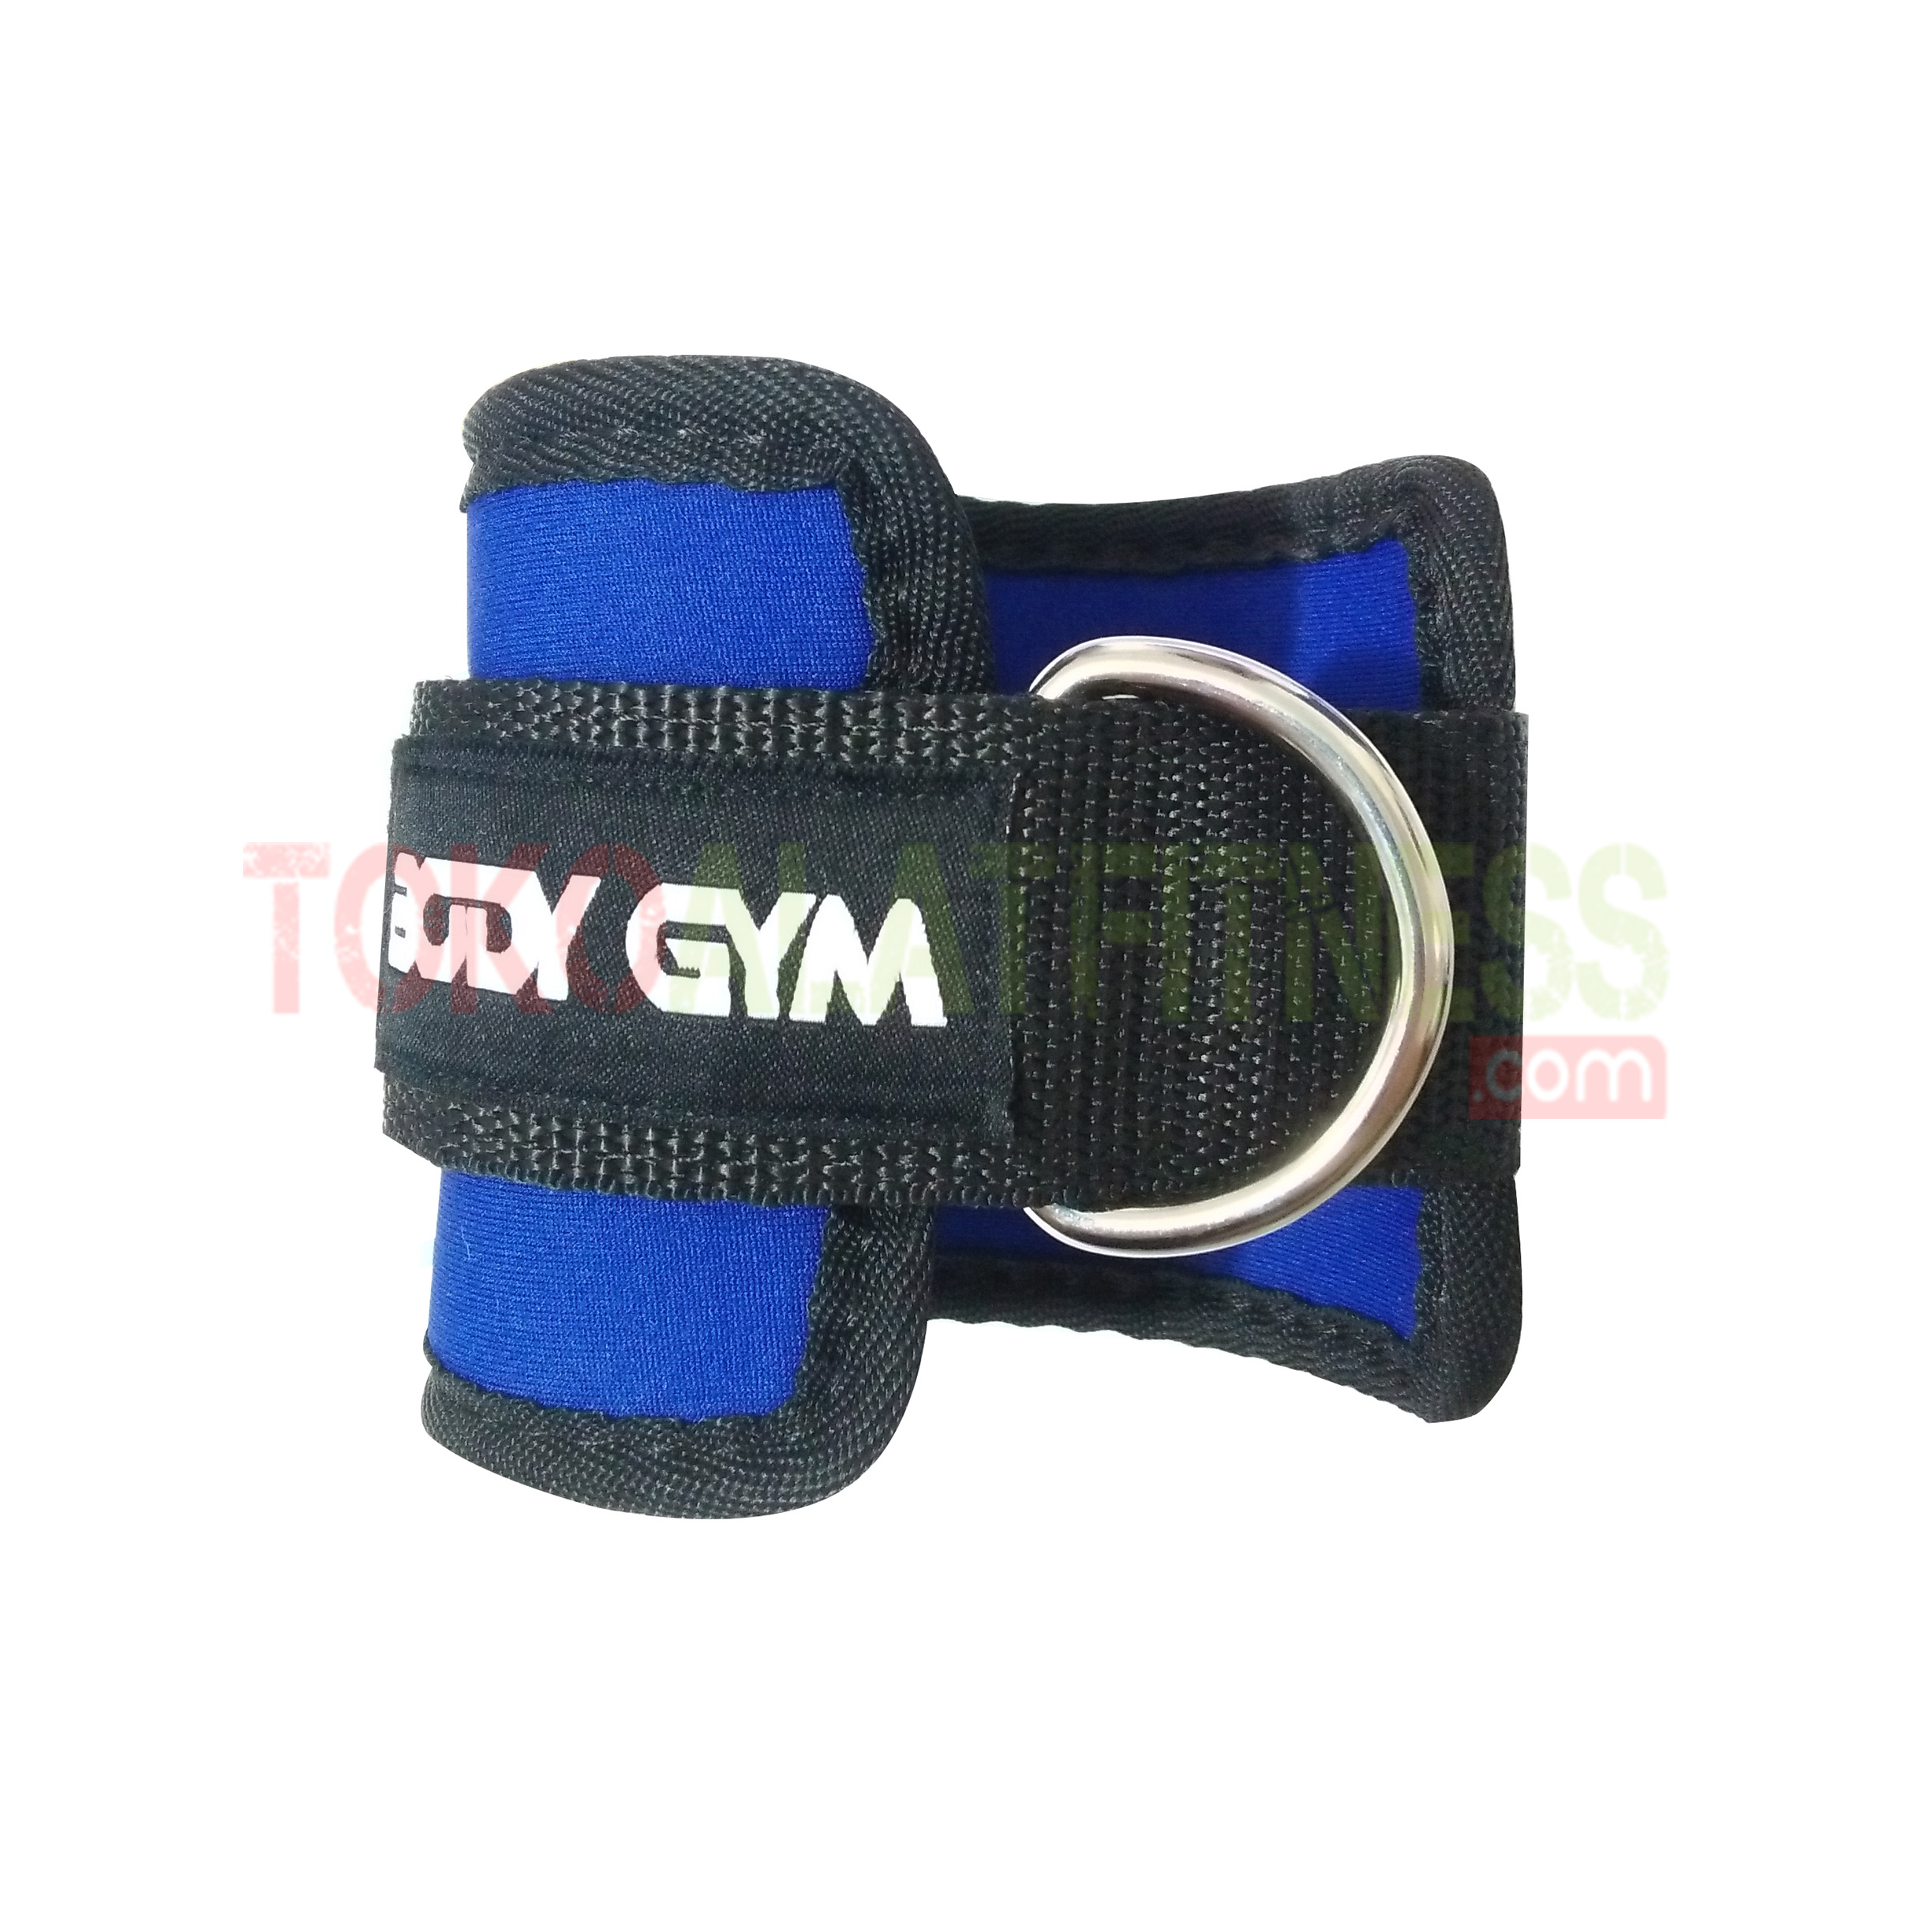 ankle strap lifting wtm - Ankle Lifting Strap Body Gym - ASSAF37B